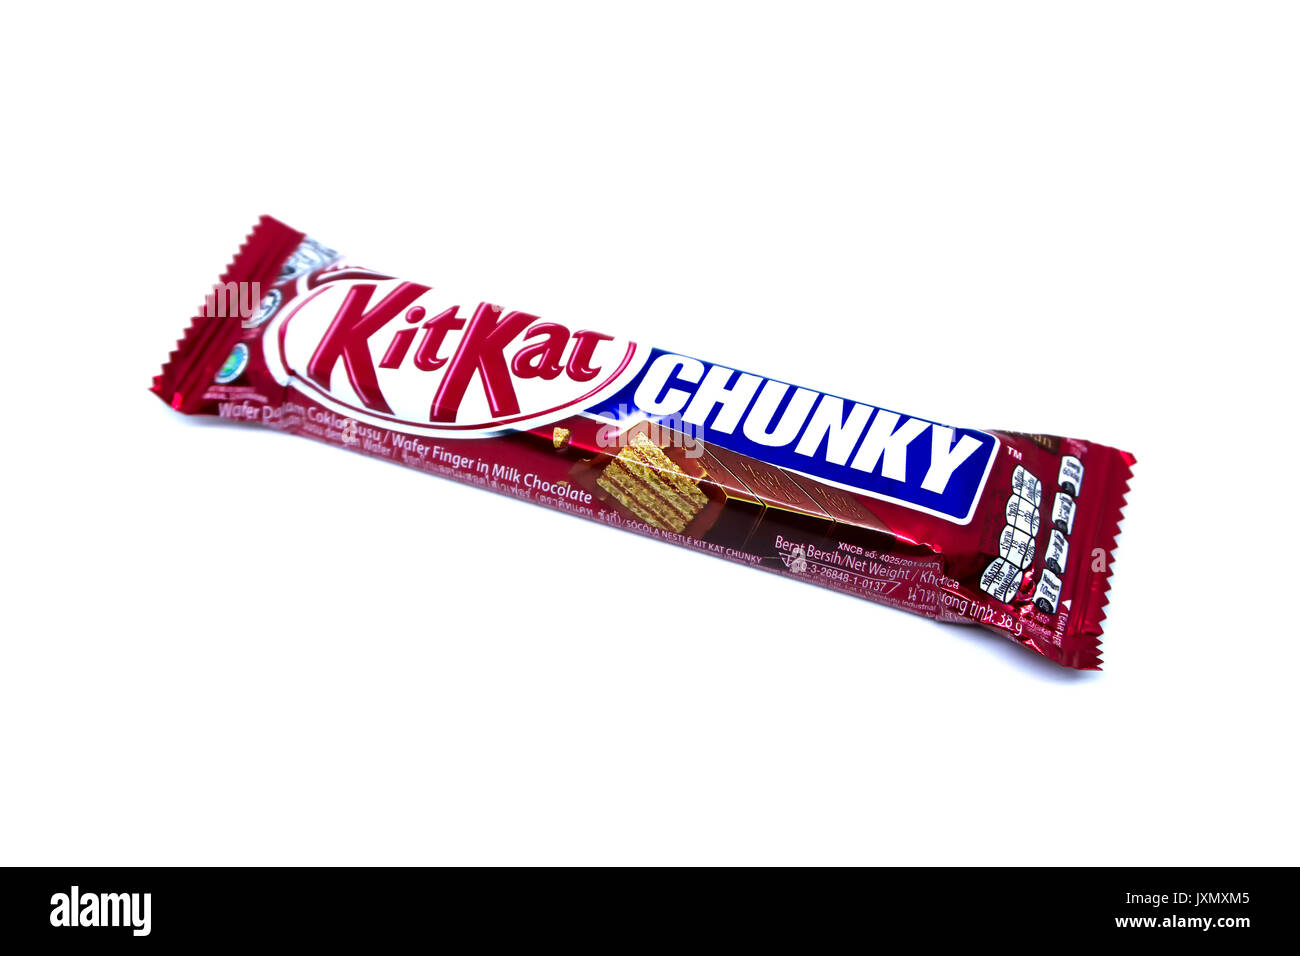 Kota Kinabalu, Malaysia - August 16, 2017: Kit Kat Chunky Wafer Finger in Milk Chocolate flavored isolated on white background. Kit Kat bars are produ - Stock Image